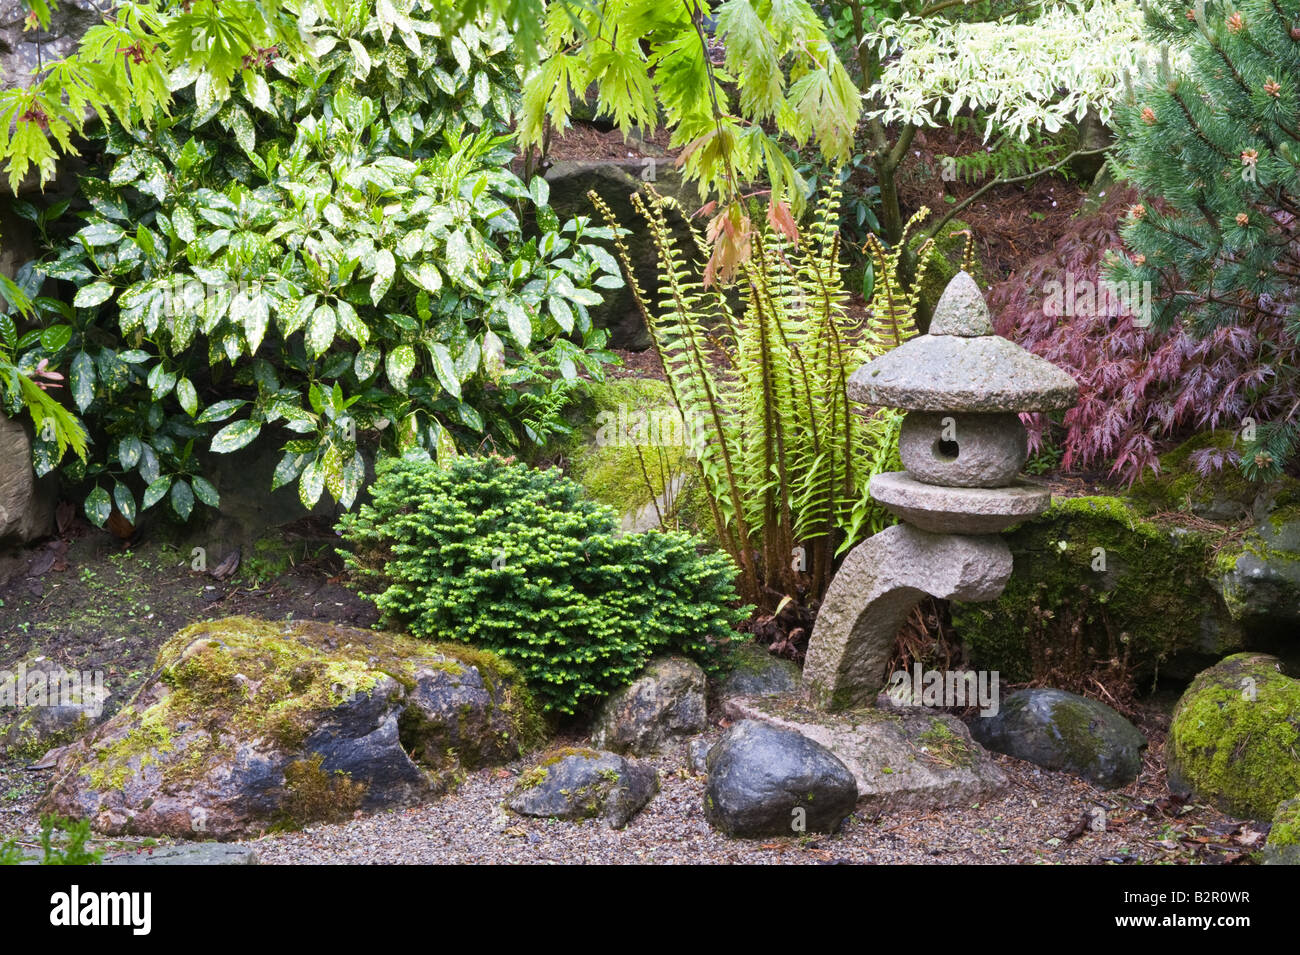 Rock Garden With Fern Japanese Lantern, Shrubs And Trees Design By Bahaa  Seedhom North Yorkshire